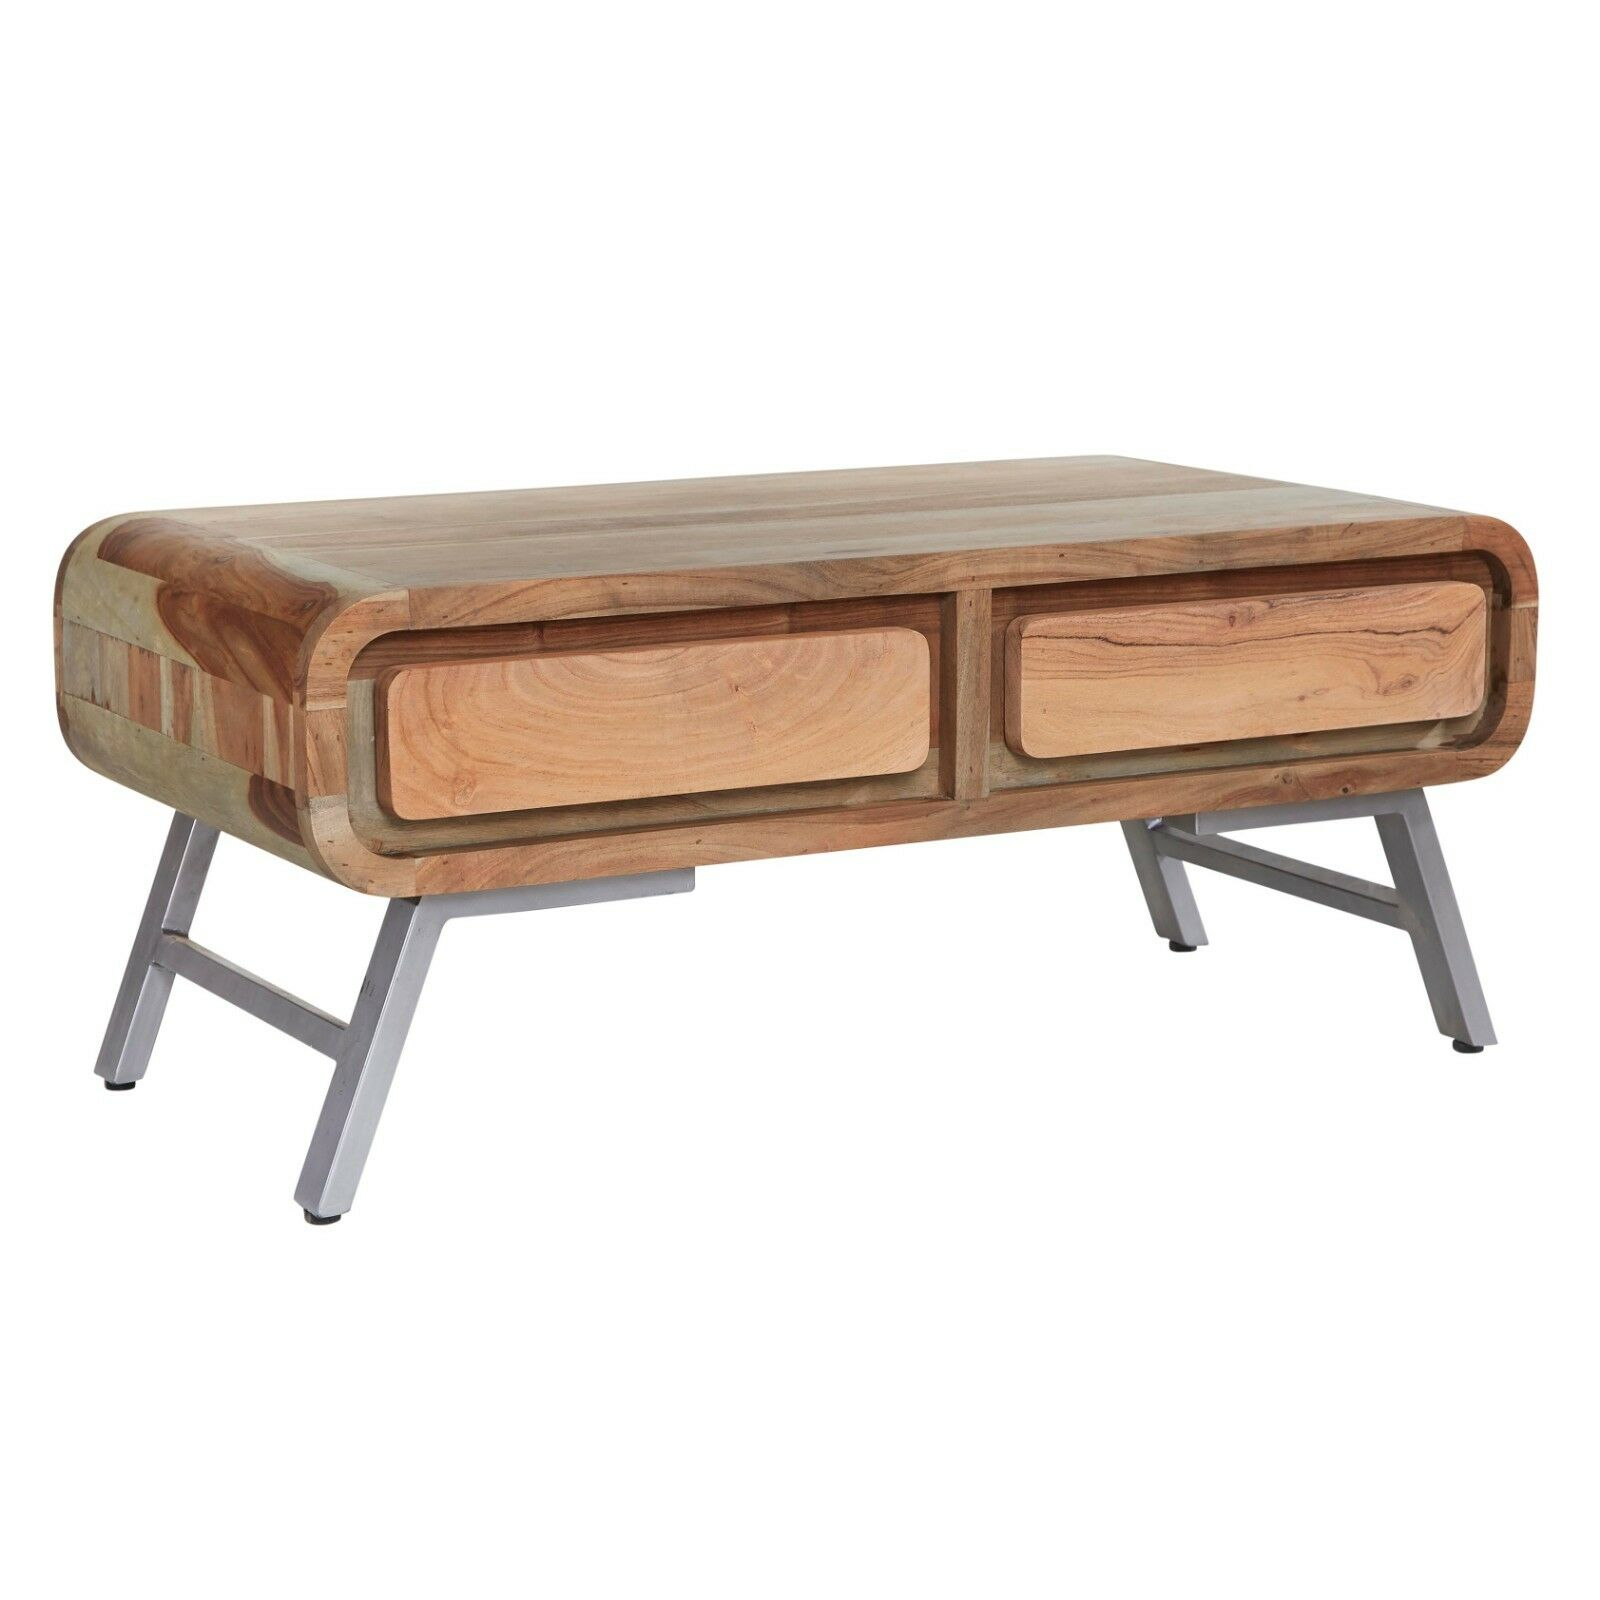 Details About Coffee Table With Drawers Two Tone Furniture Aspire Acacia Collection As10